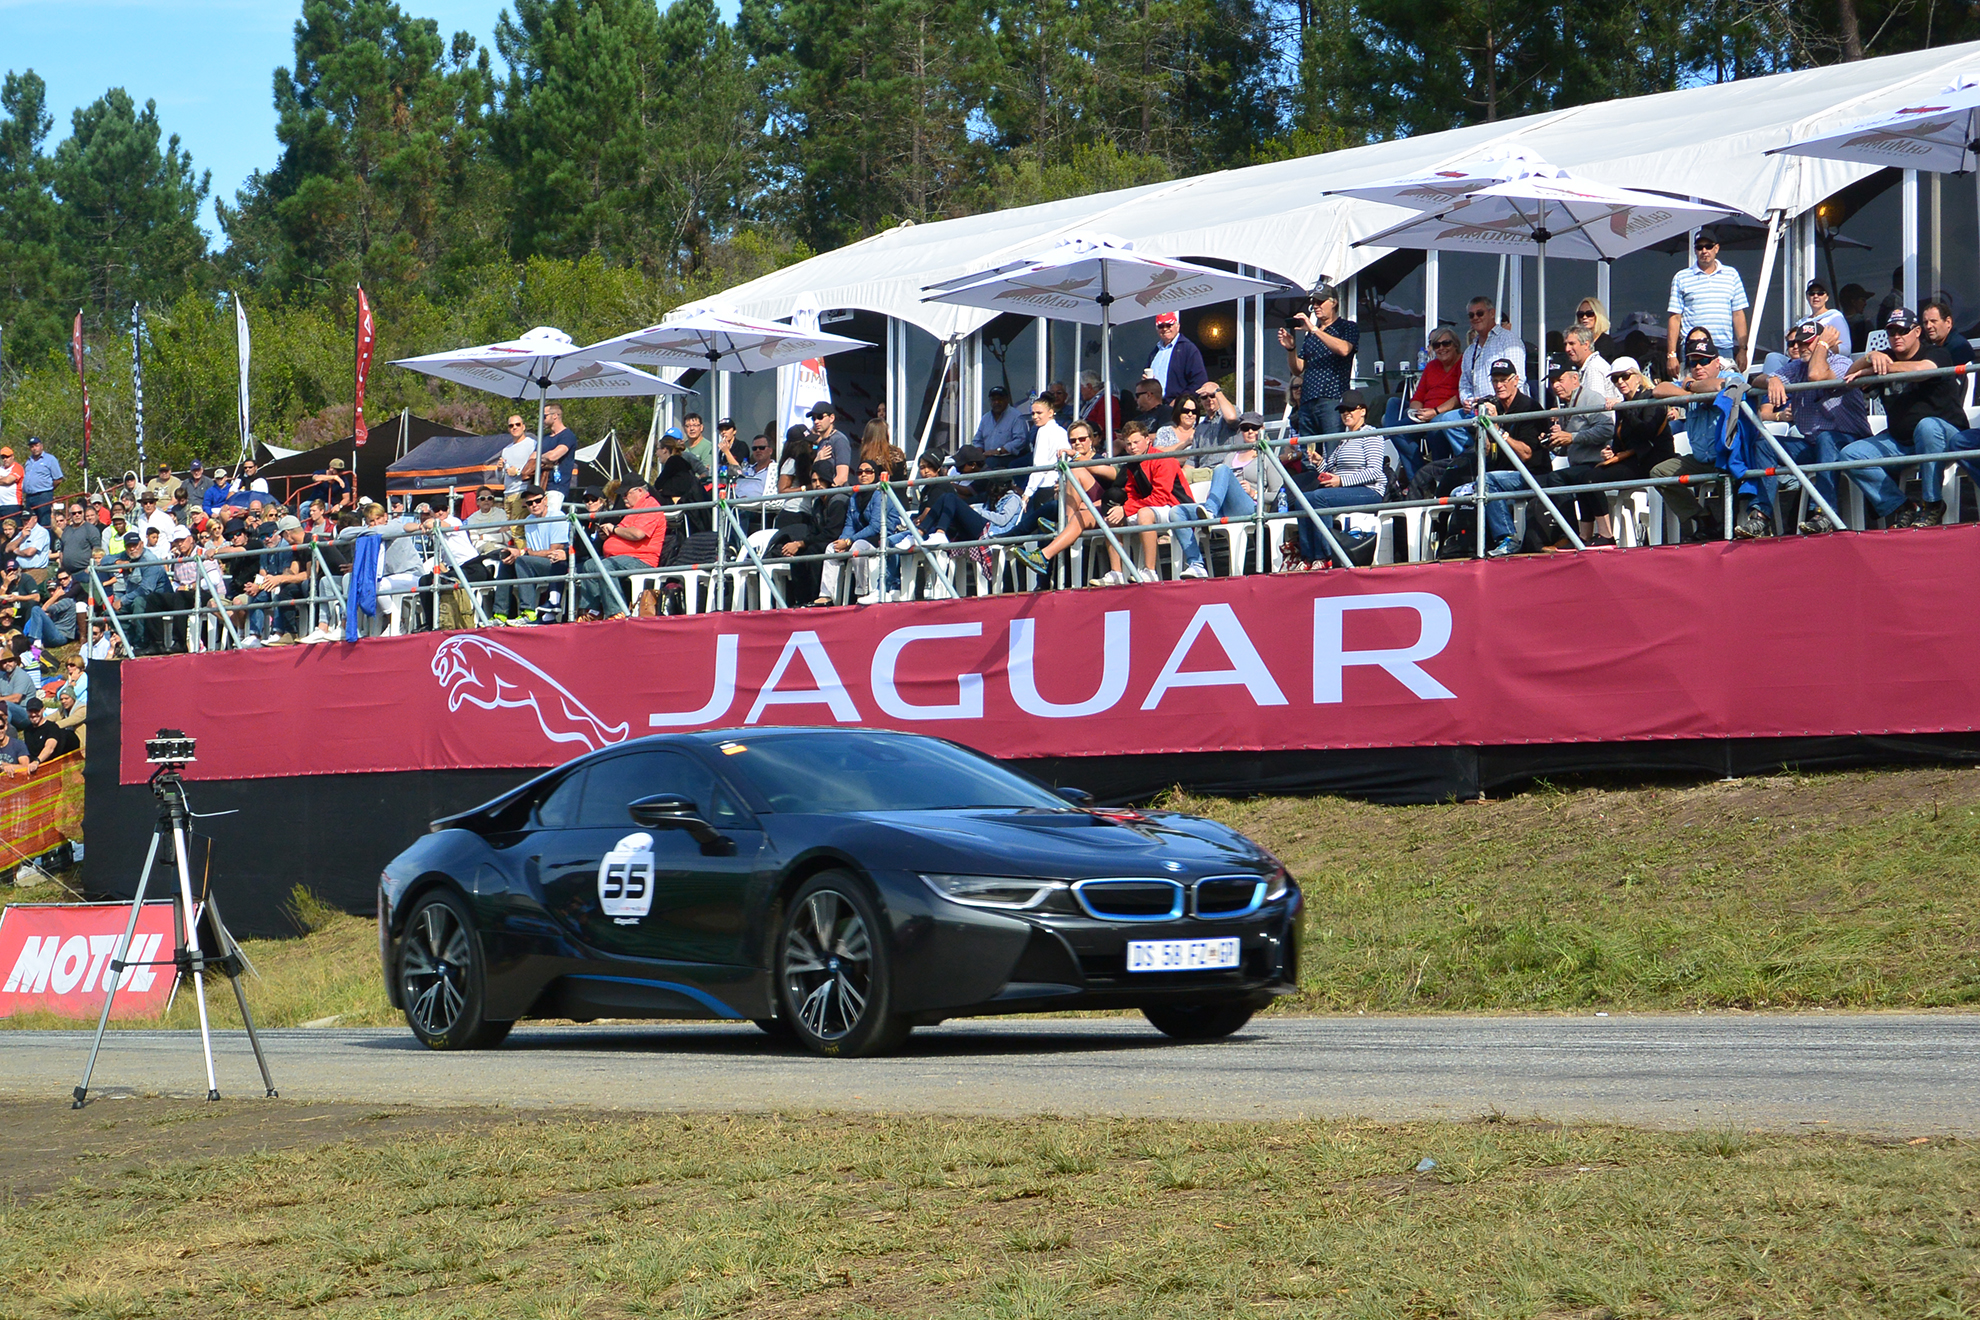 jaguar-simola-hillclimb-360-video